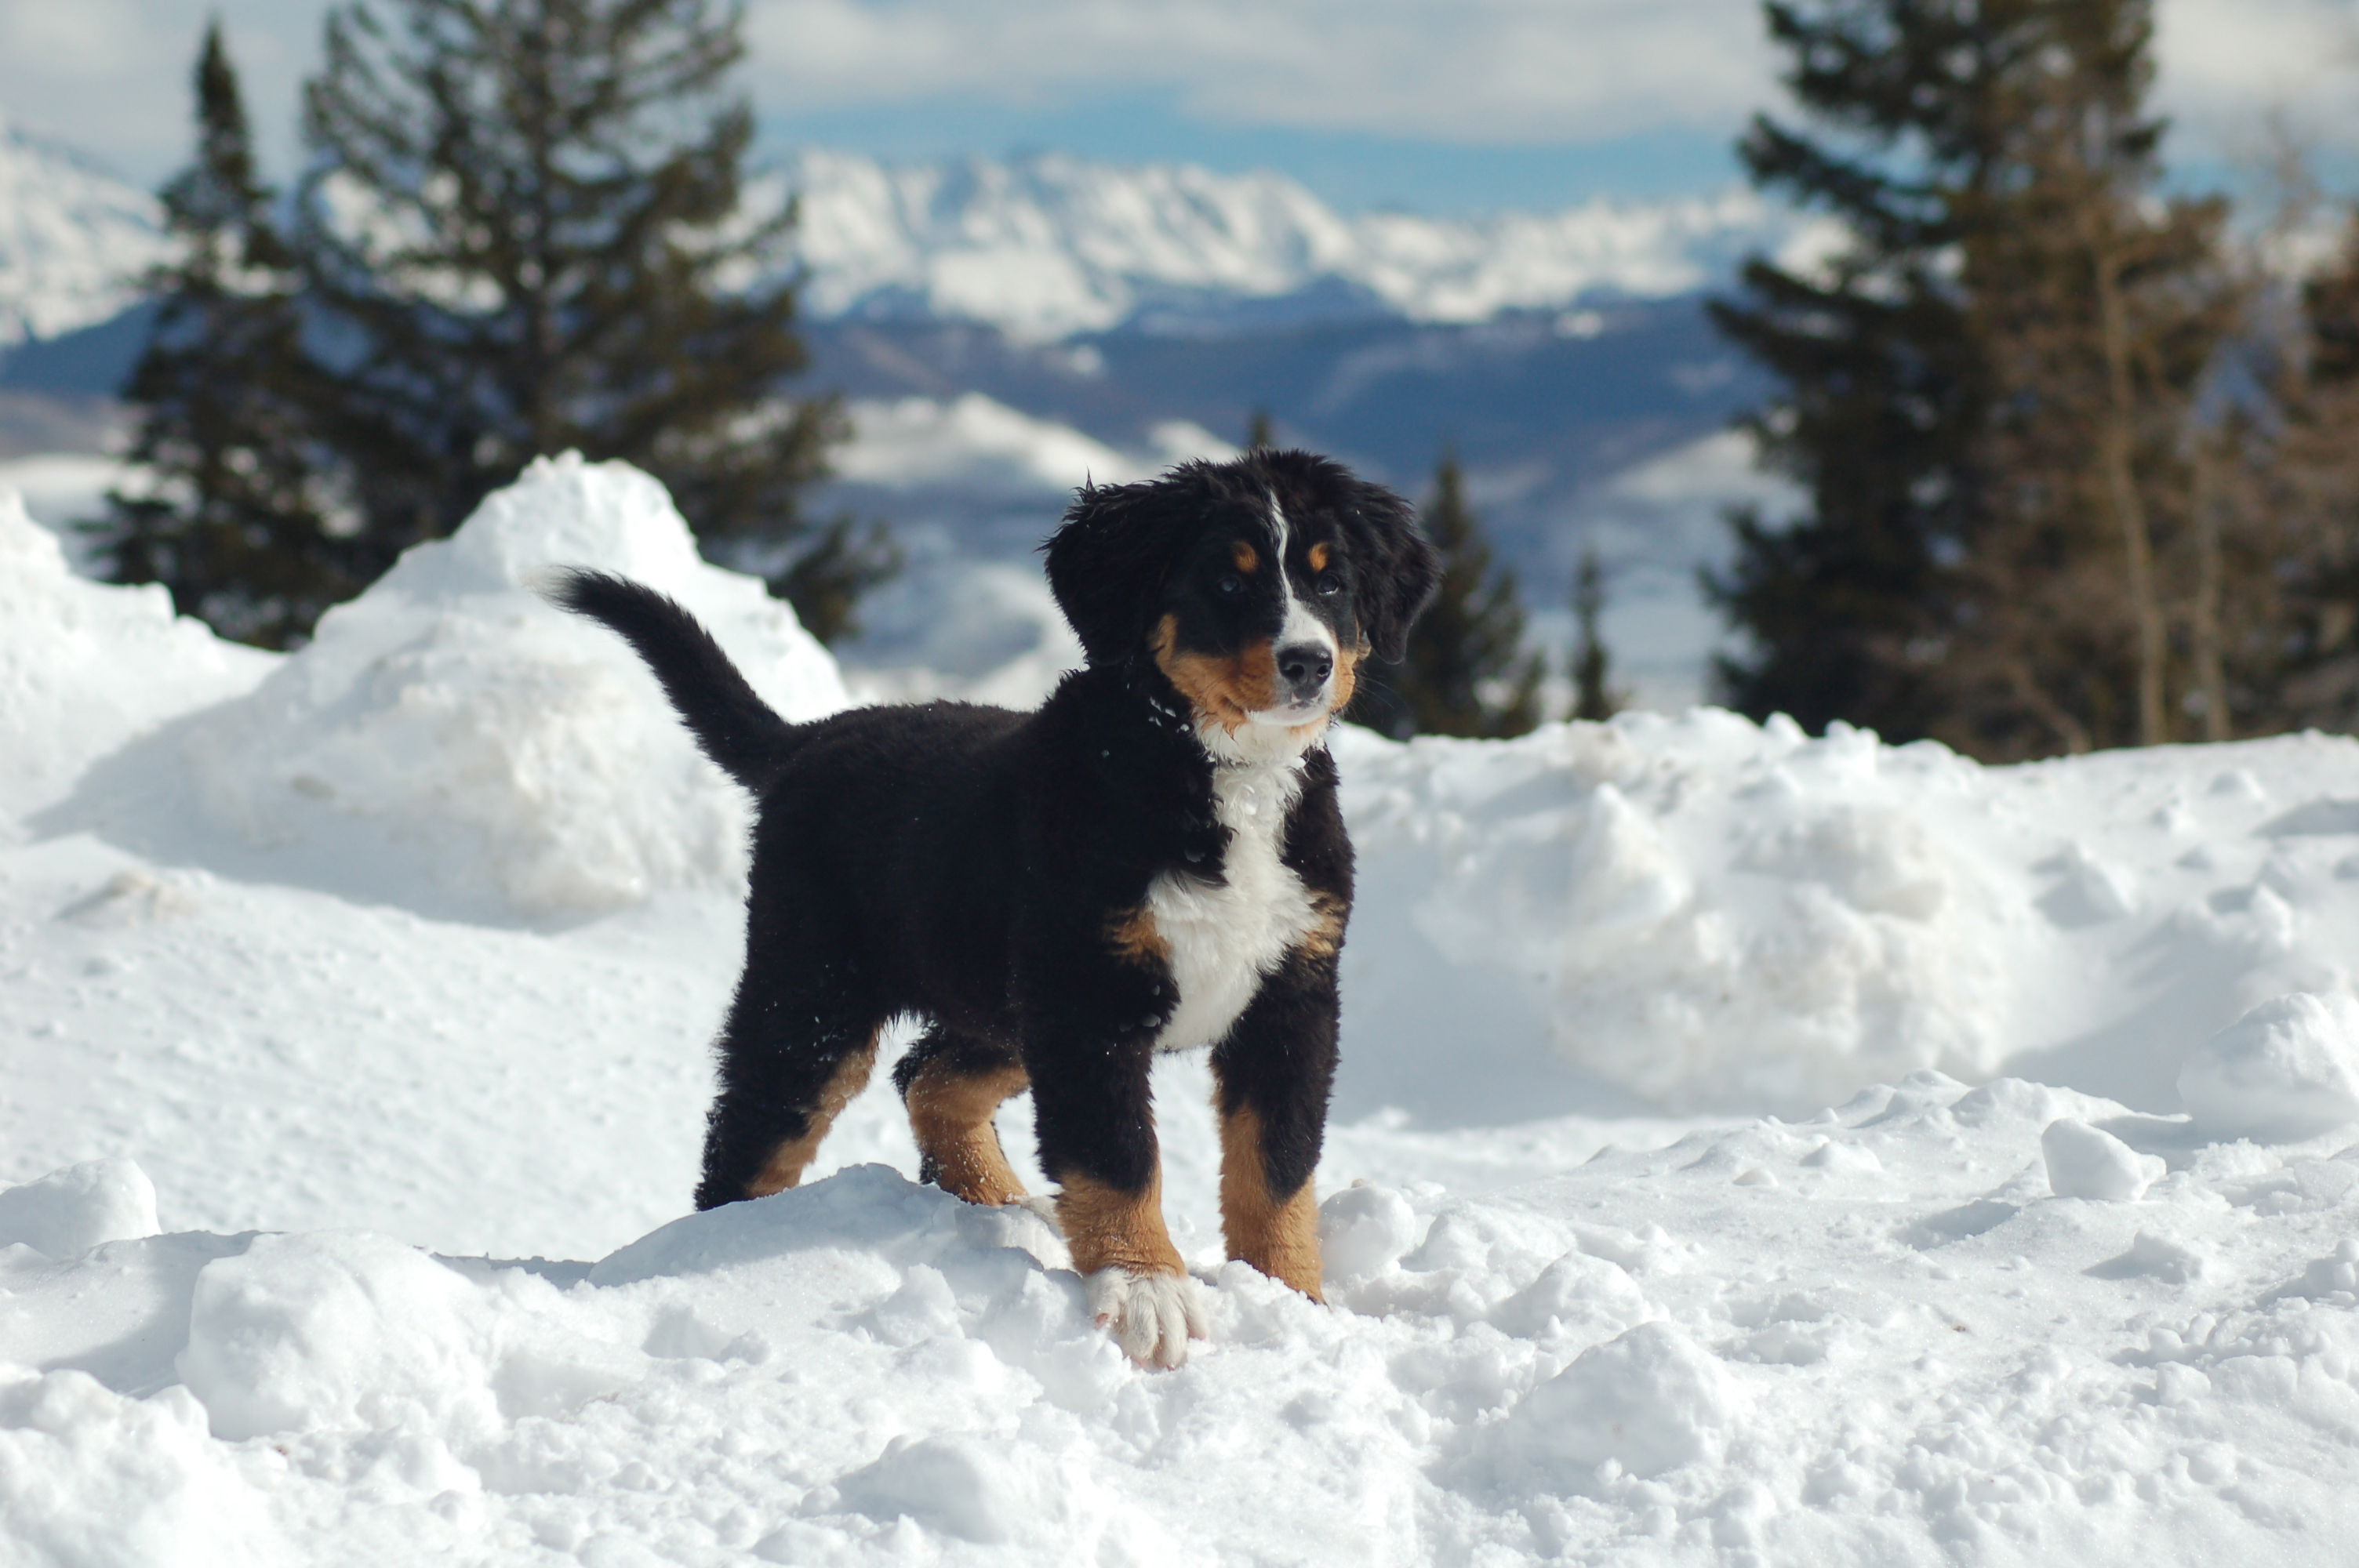 Mountain dog puppy in the snow wallpapers and images   wallpapers 3008x2000